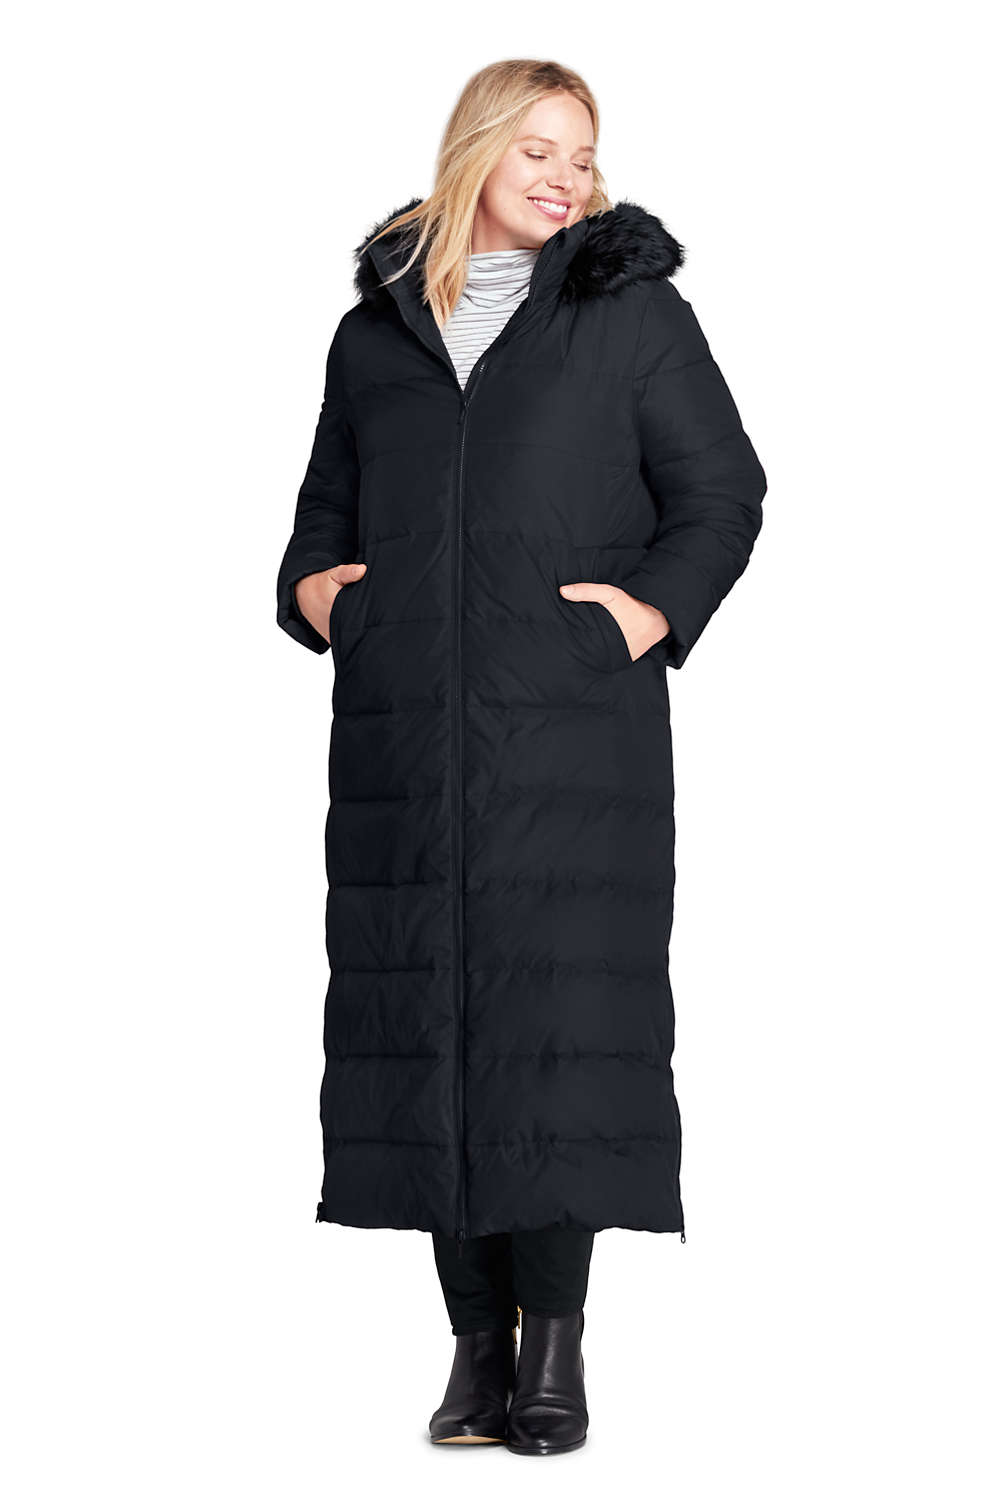 c4a4a09158a Women s Plus Size Winter Long Down Coat with Faux Fur Hood from Lands  End